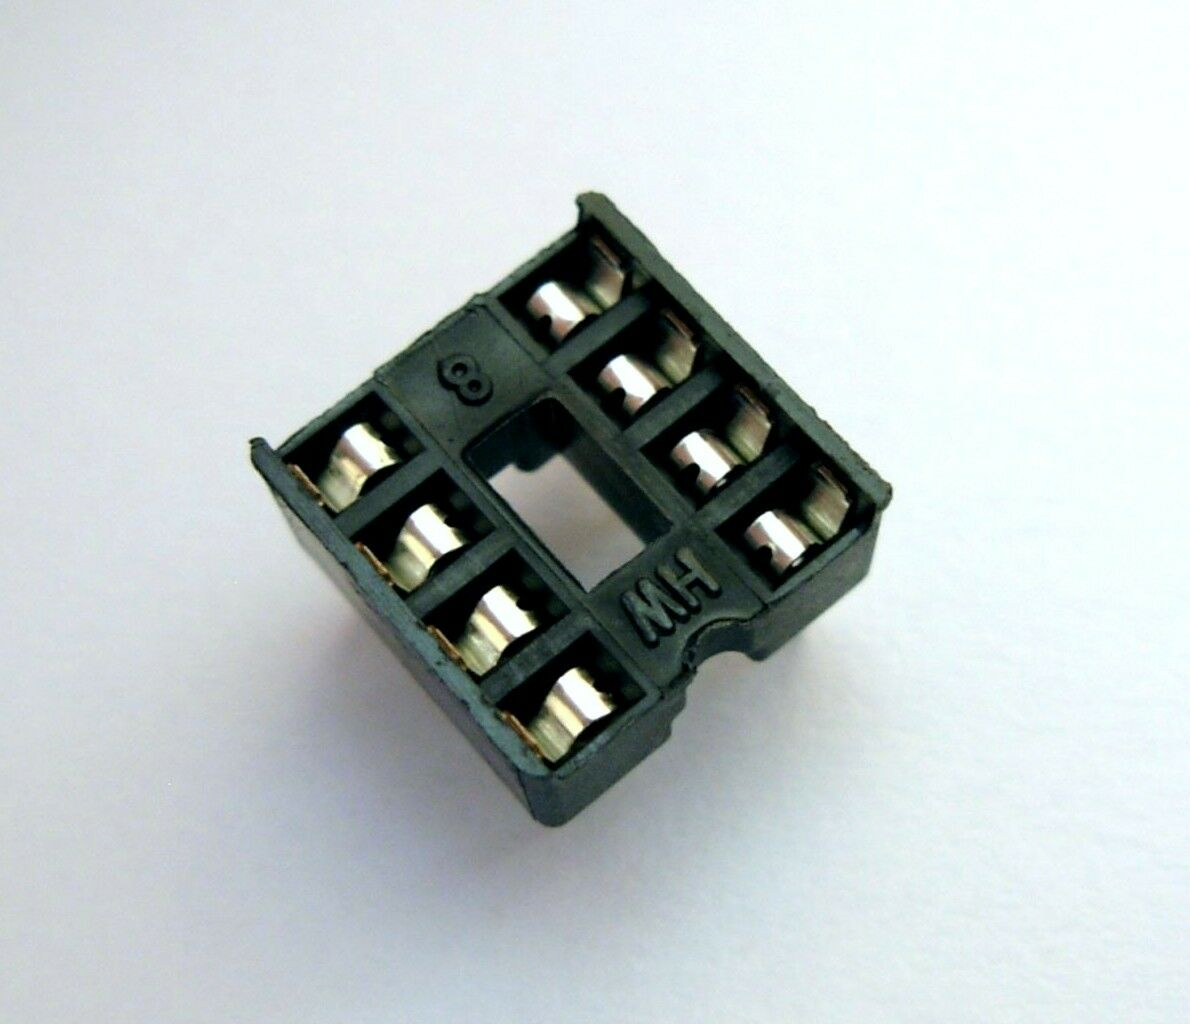 Support socket pour circuit intégré 8 broches DIP 8 pins support for IC